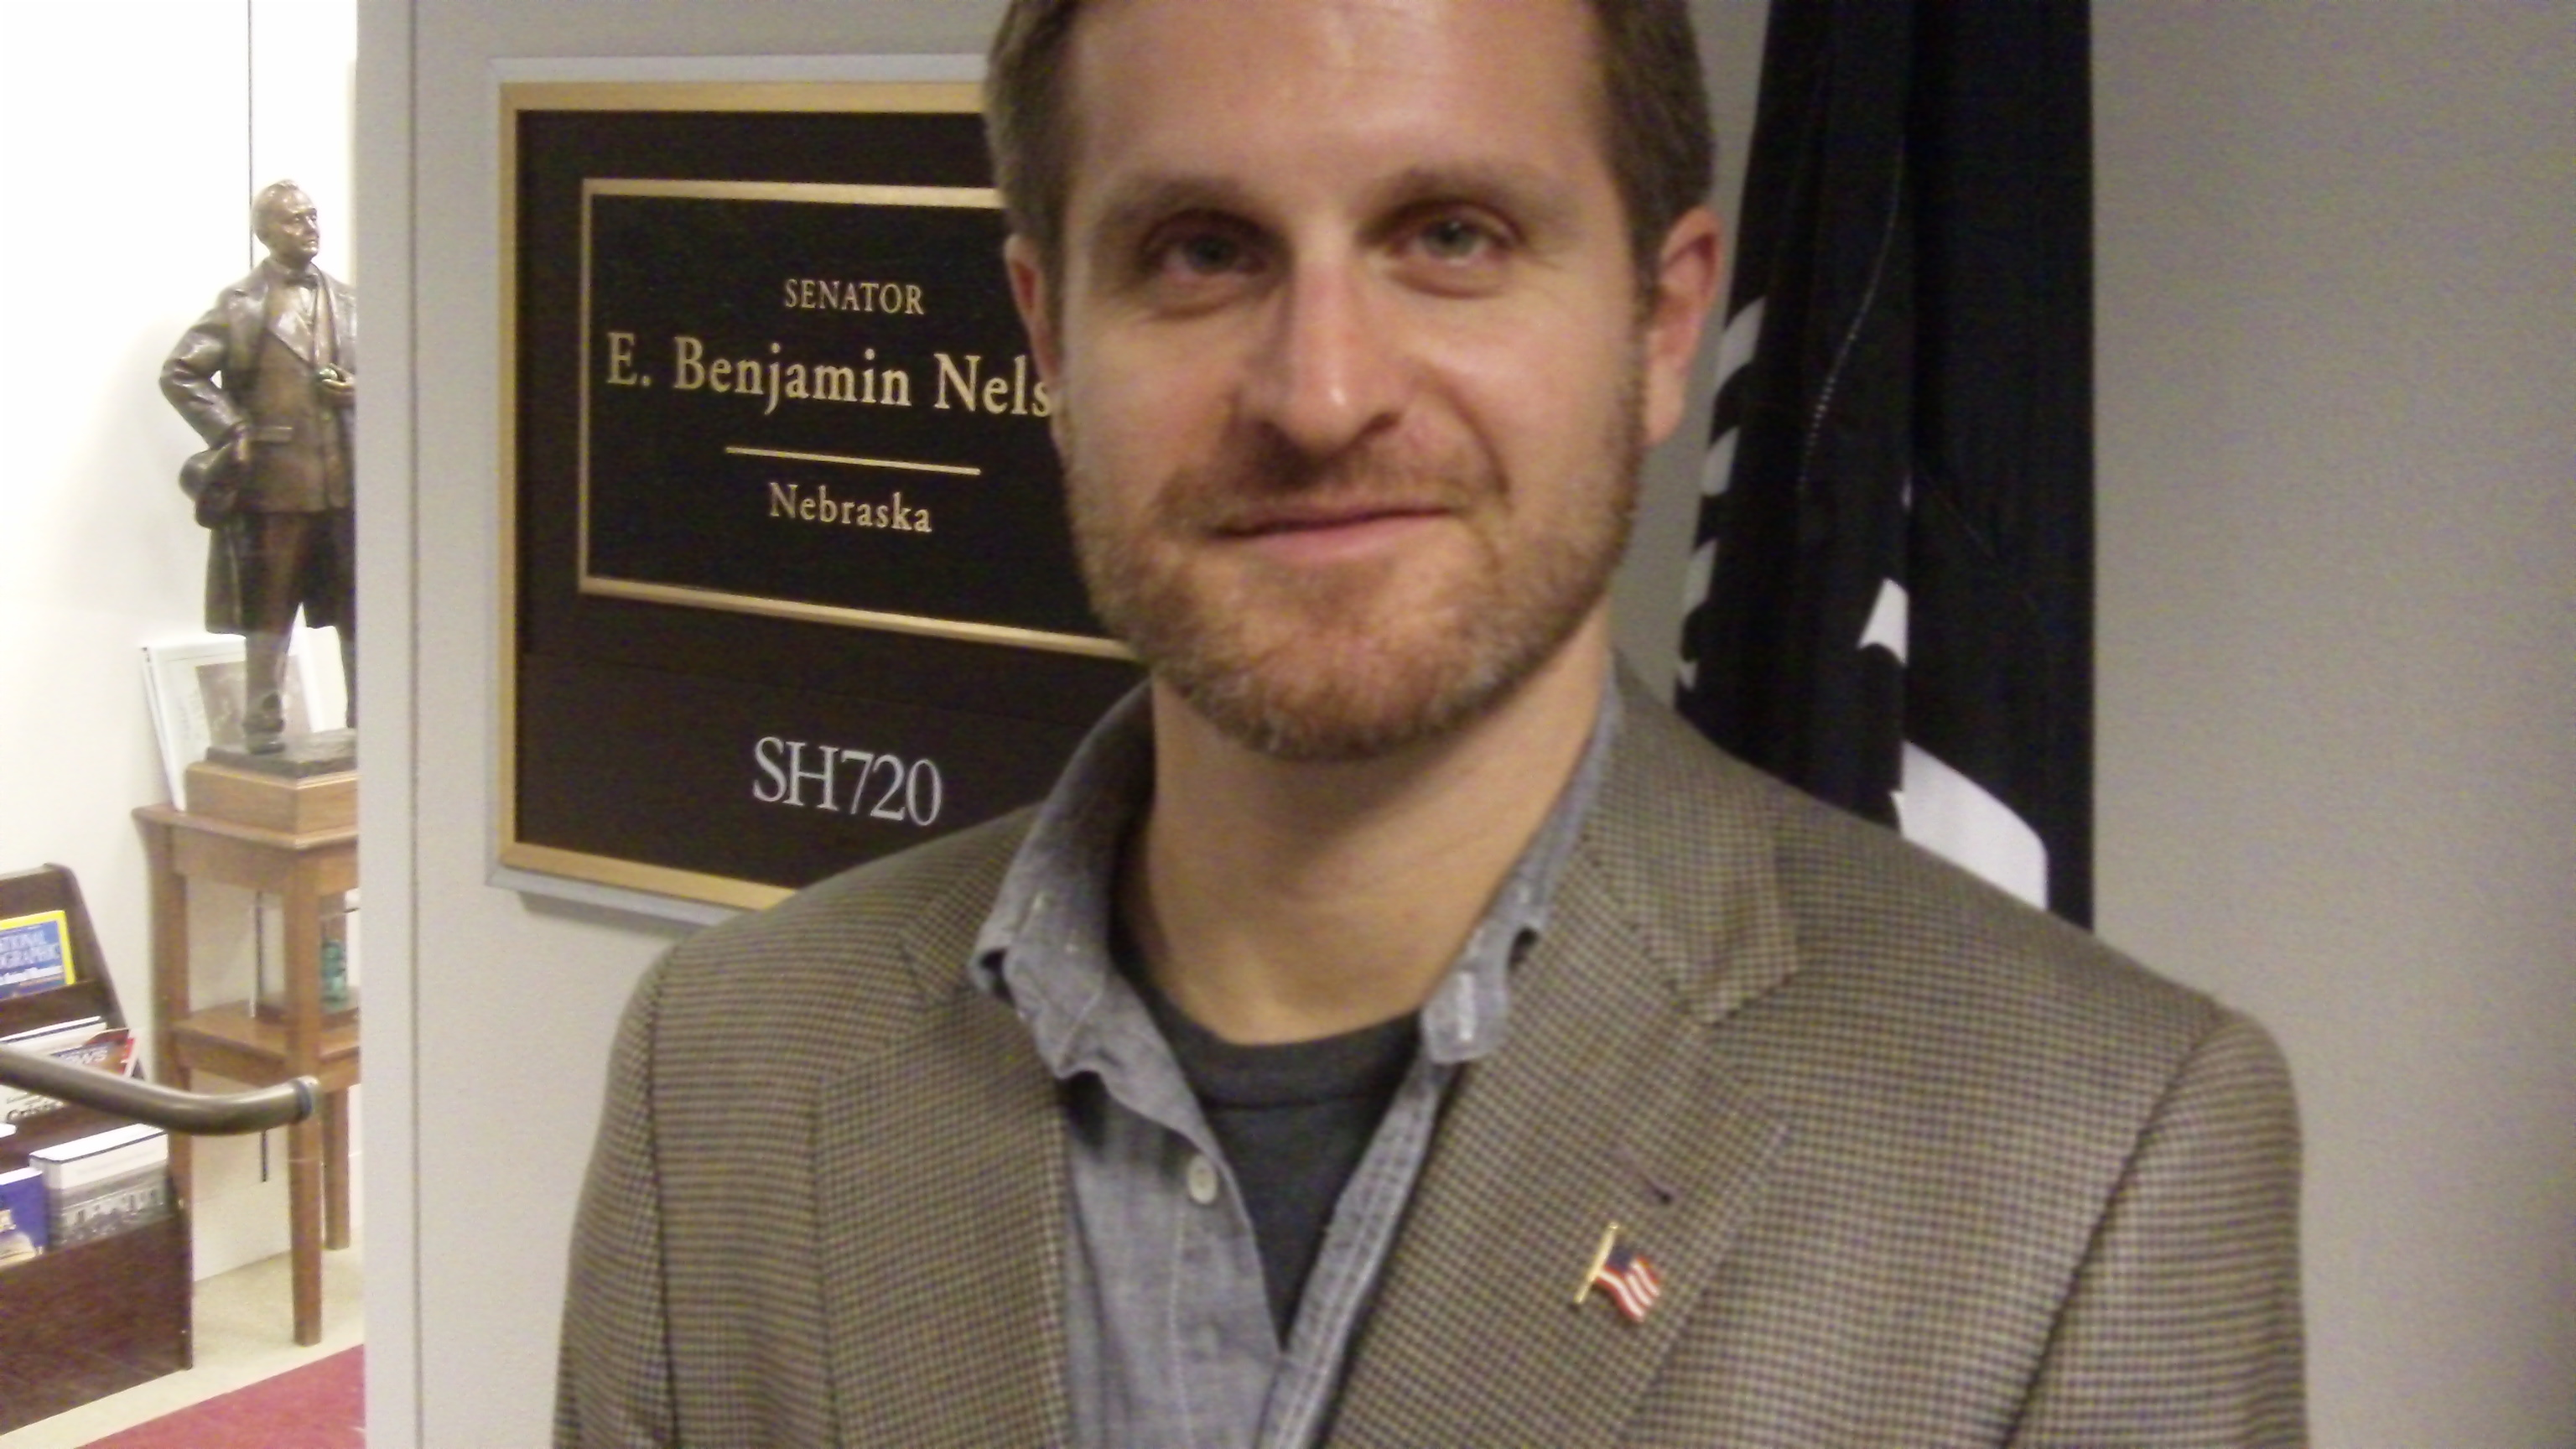 Martin Eisenstadt in Sen. Ben Nelsons office